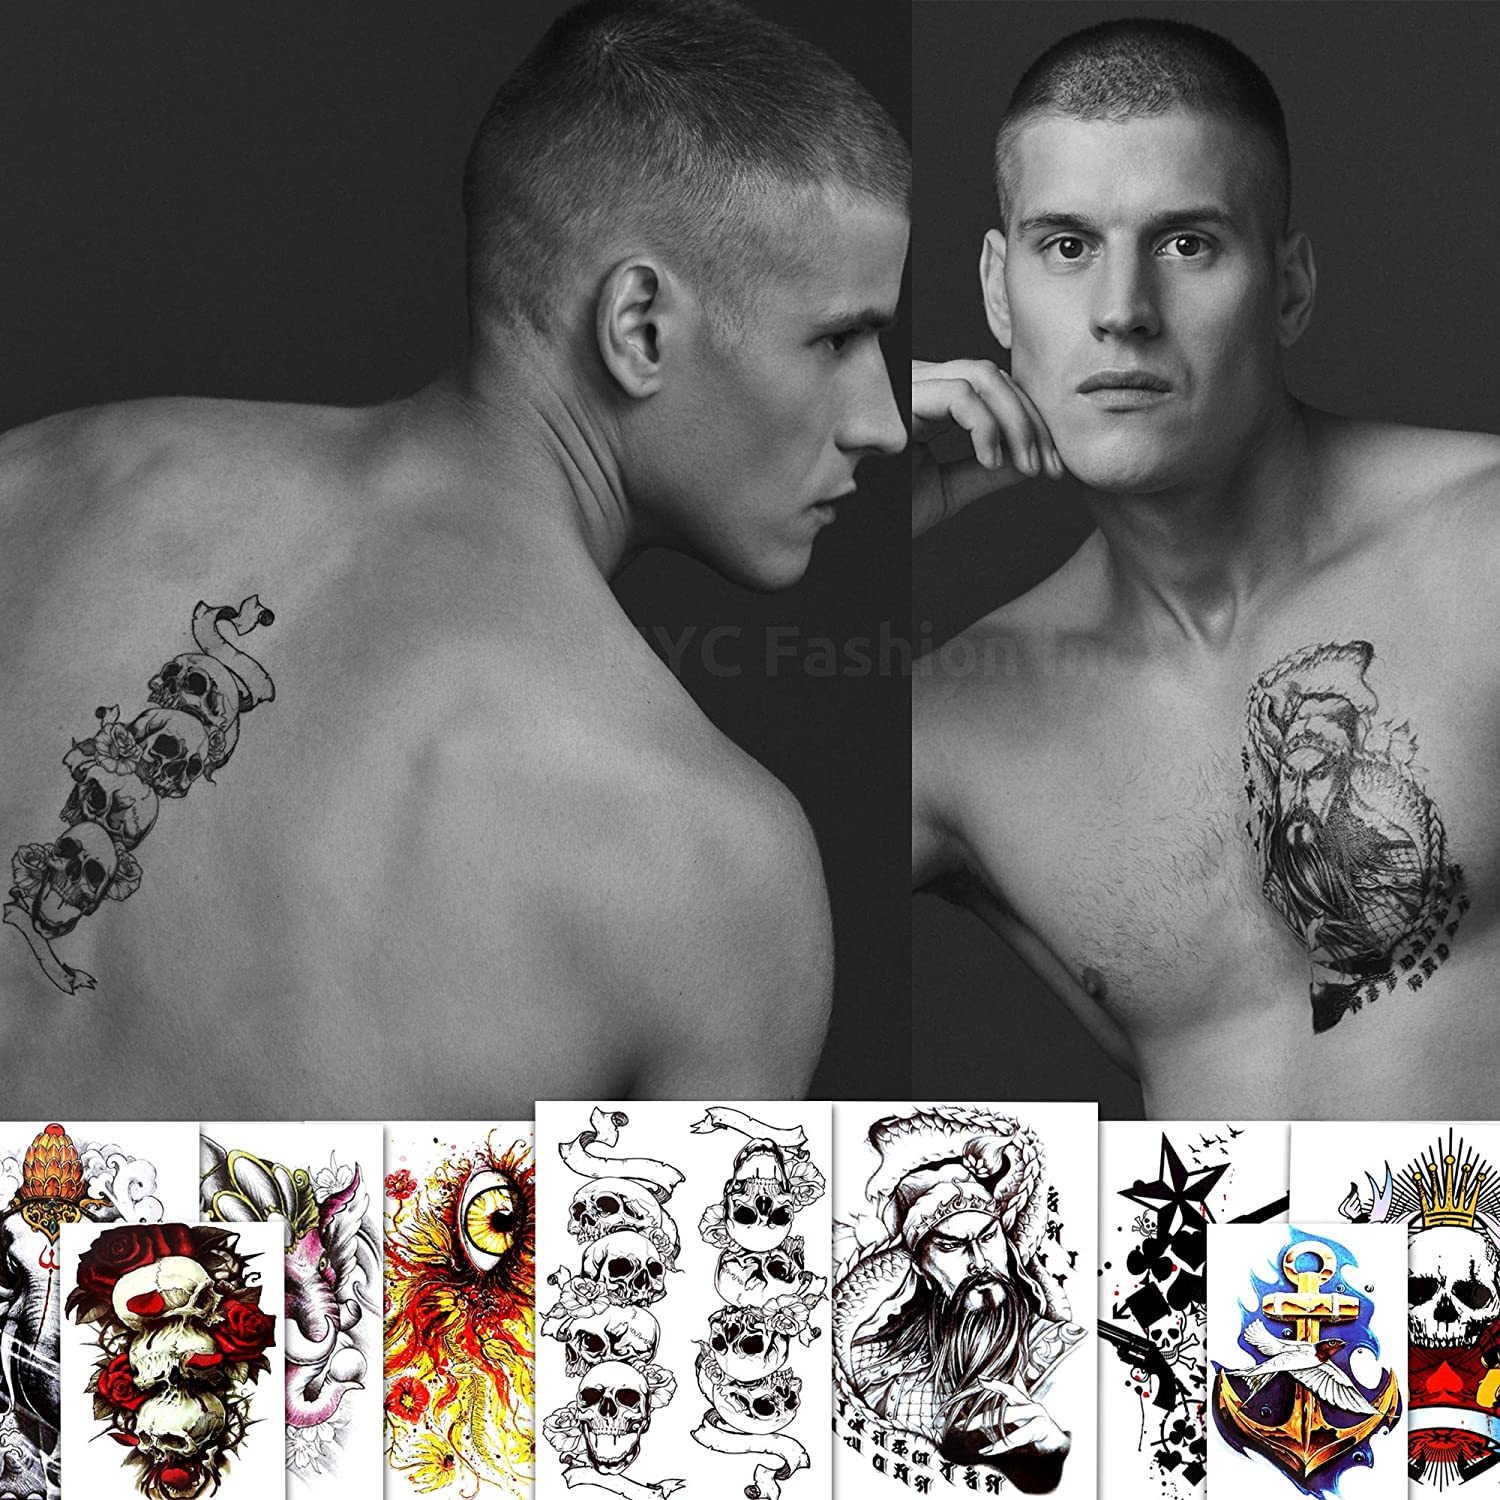 9 Large Cool Temporary Tattoos - For Men, Adults and Teens - Skull, Elephant, Eyes and More Body Art - Tattoos for Arms Legs Shoulders or Back